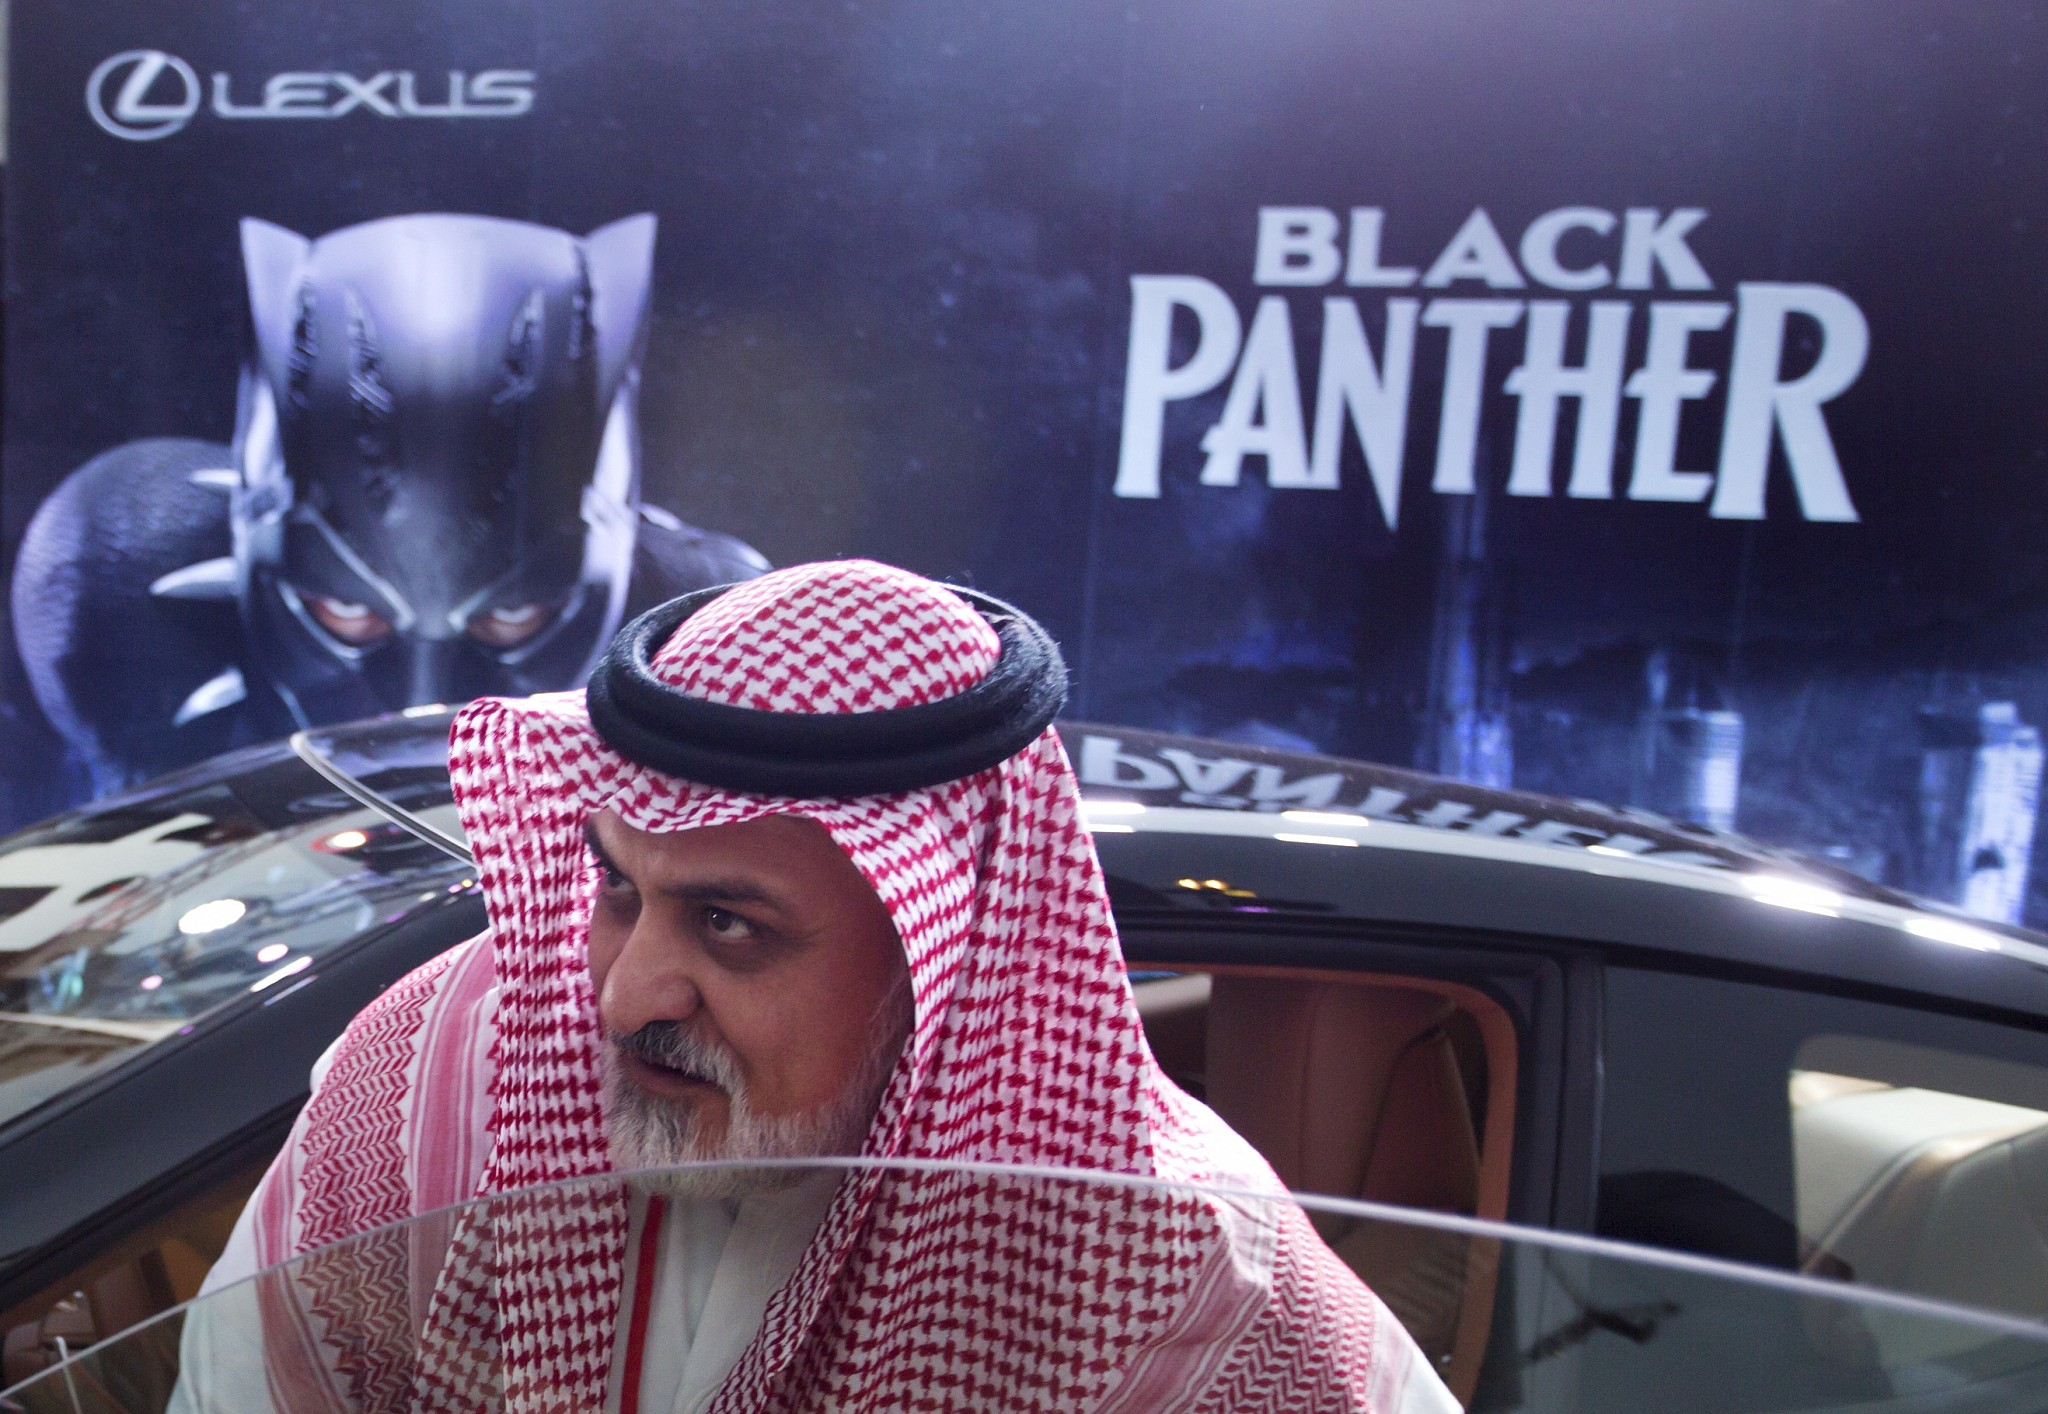 'Black Panther' Opening: Saudi Arabia Lifting Decades-Long Ban on Movie Theaters